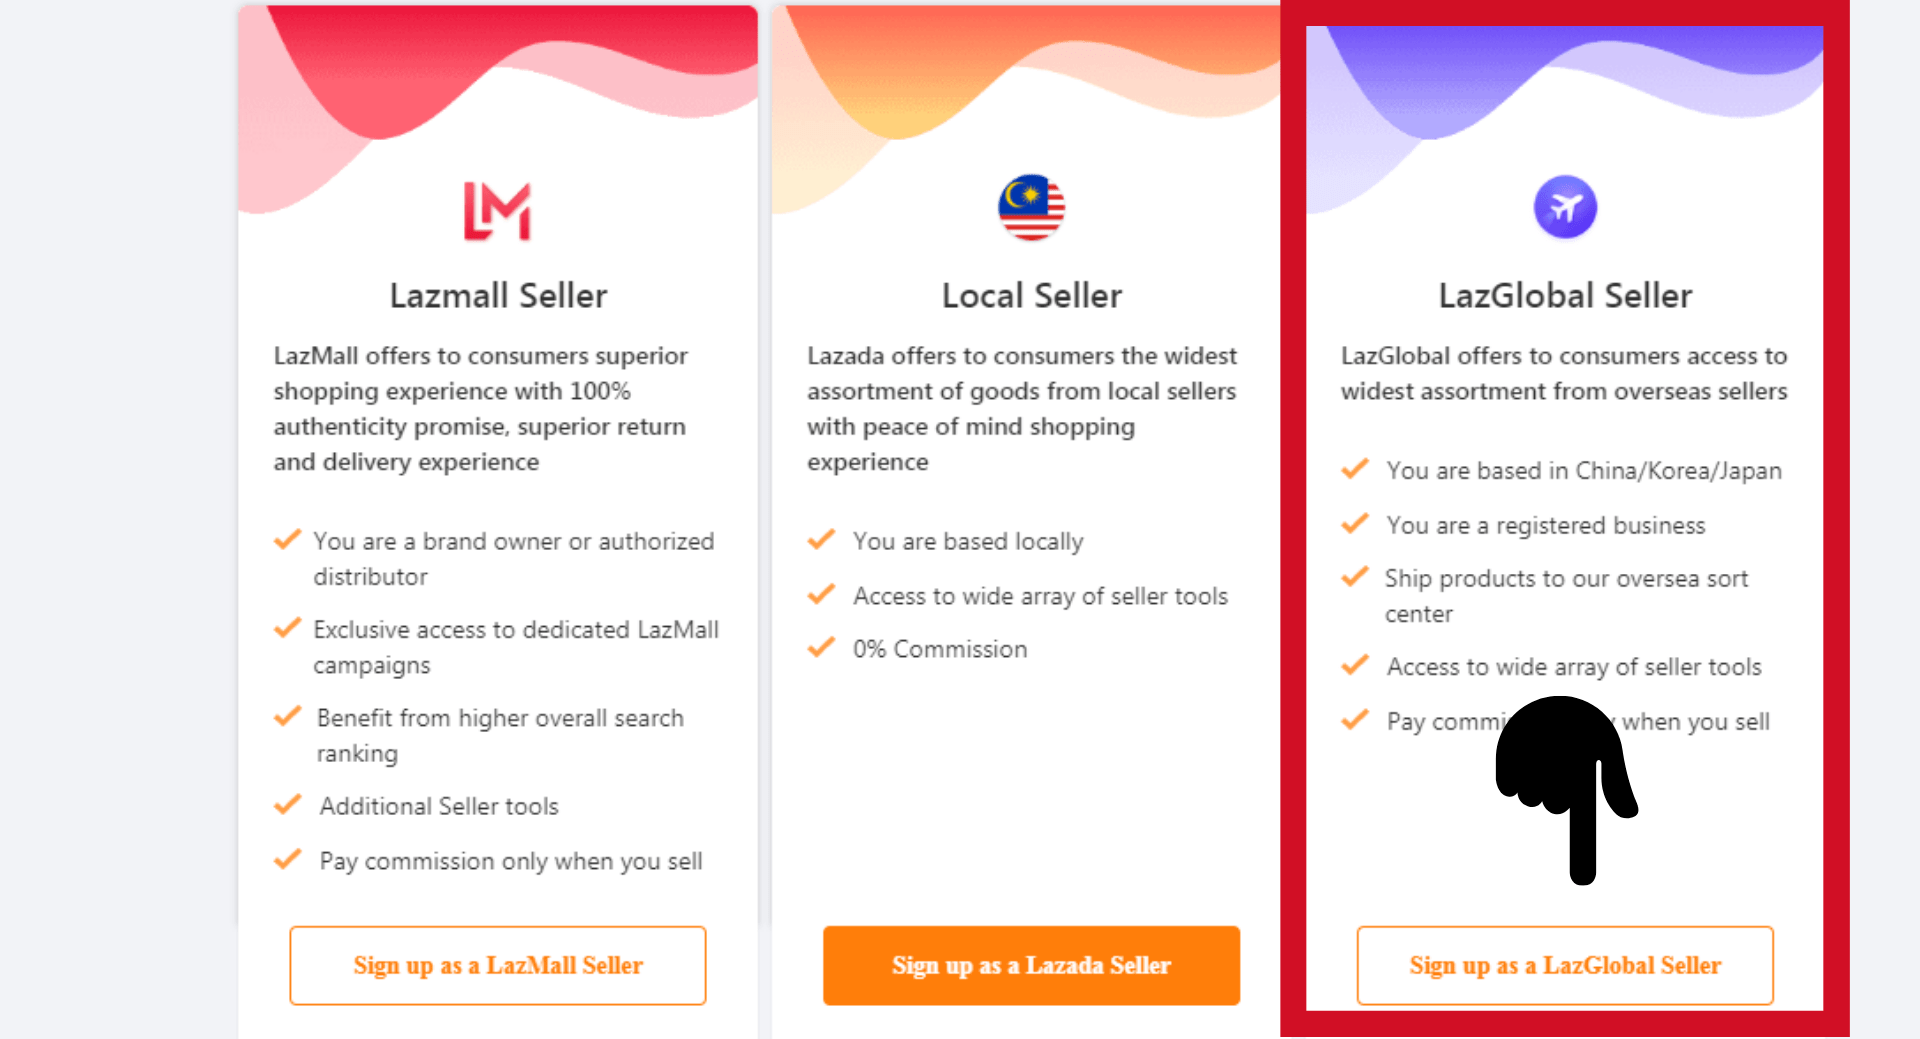 Our Guide to Selling on Lazada as an International Seller - What to Know